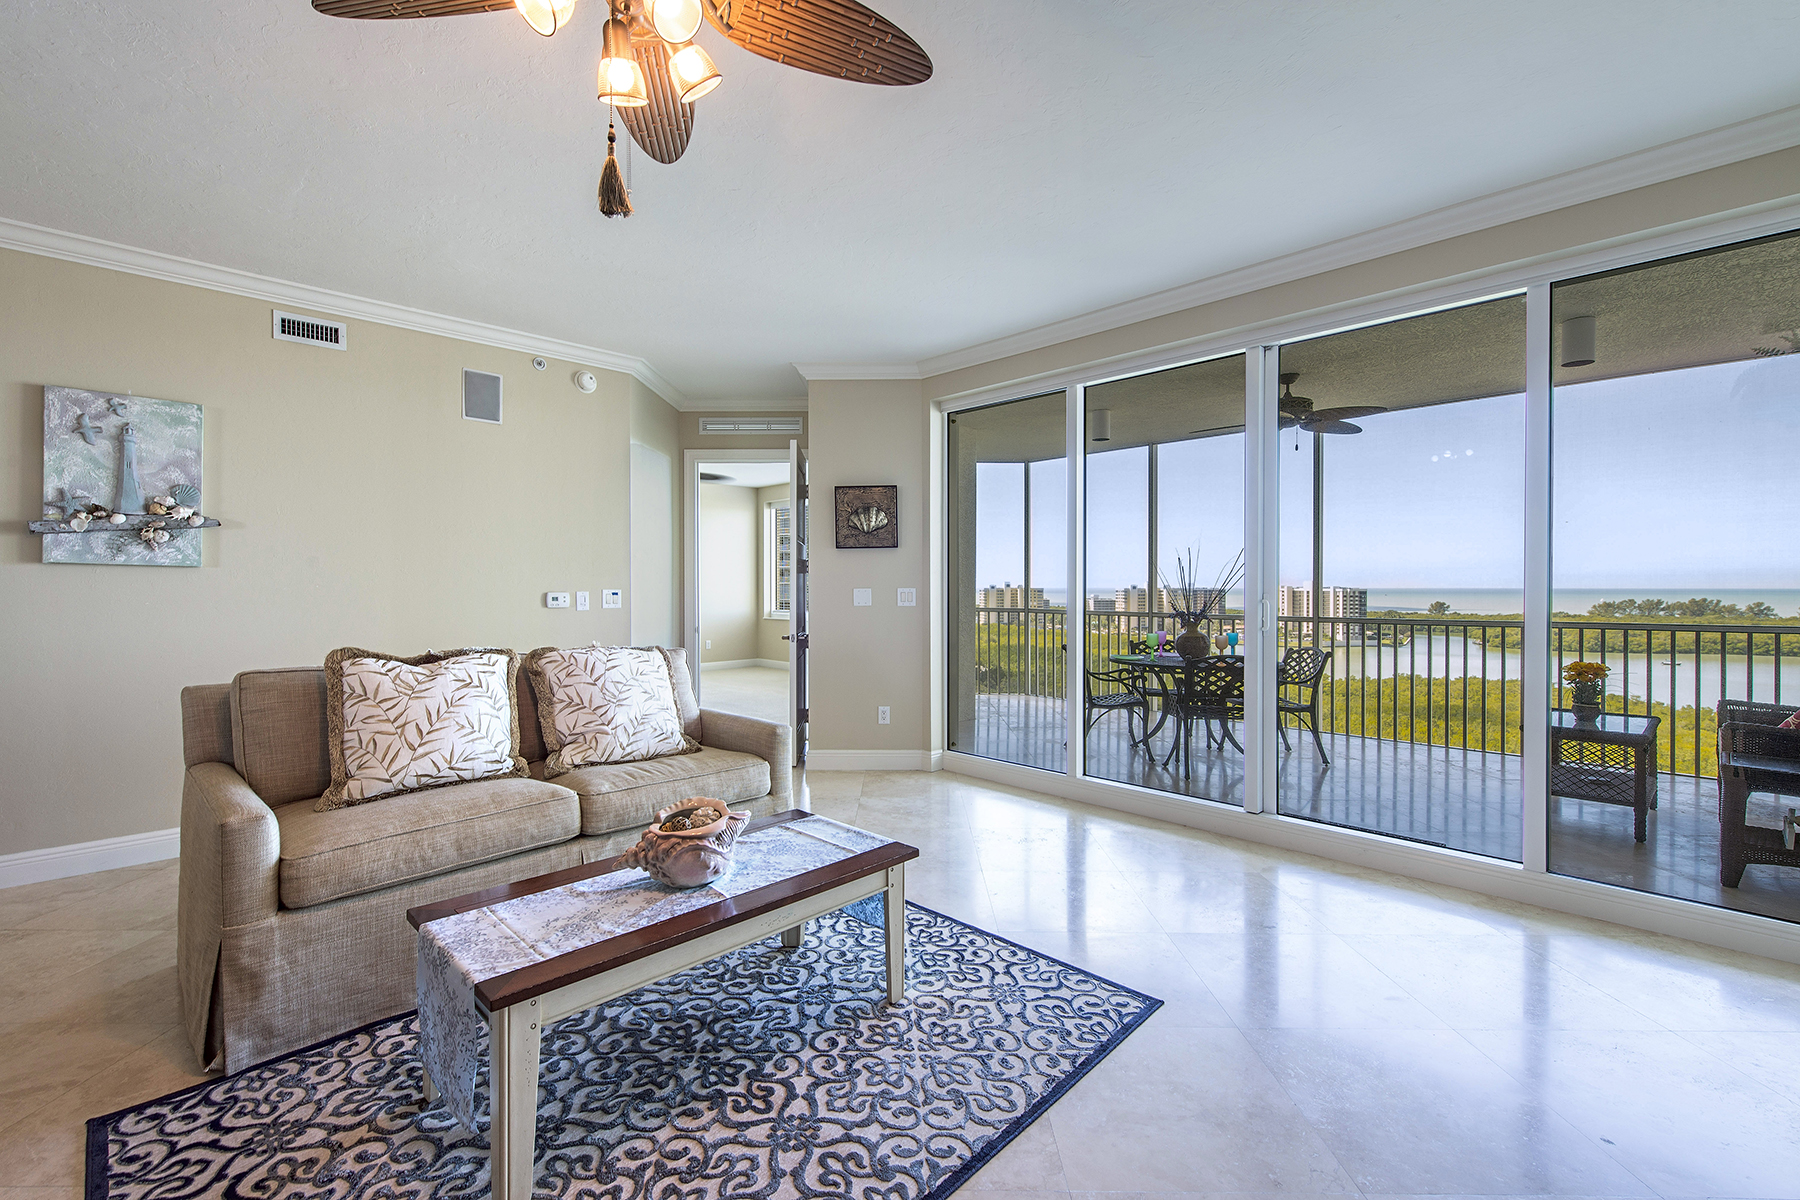 Condominio por un Venta en THE DUNES - GRANDE GENEVA 265 Indies Way 1202 Naples, Florida, 34110 Estados Unidos